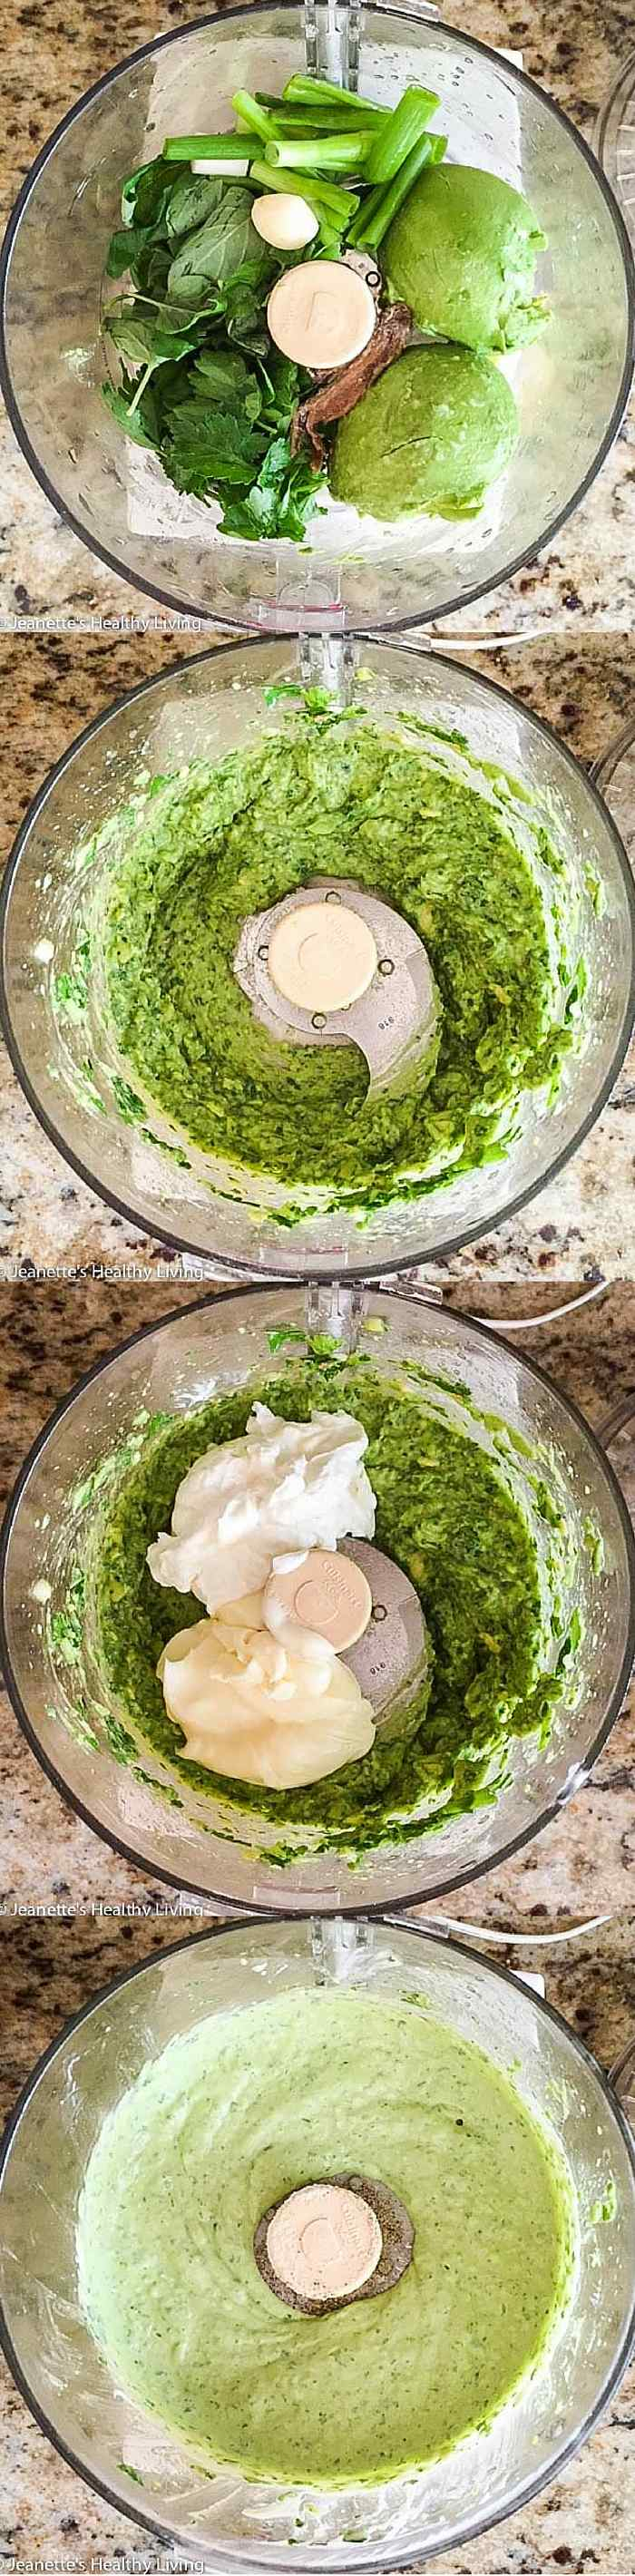 Avocado Greek Yogurt Green Goddess Dip Recipe {Daniel Plan ...